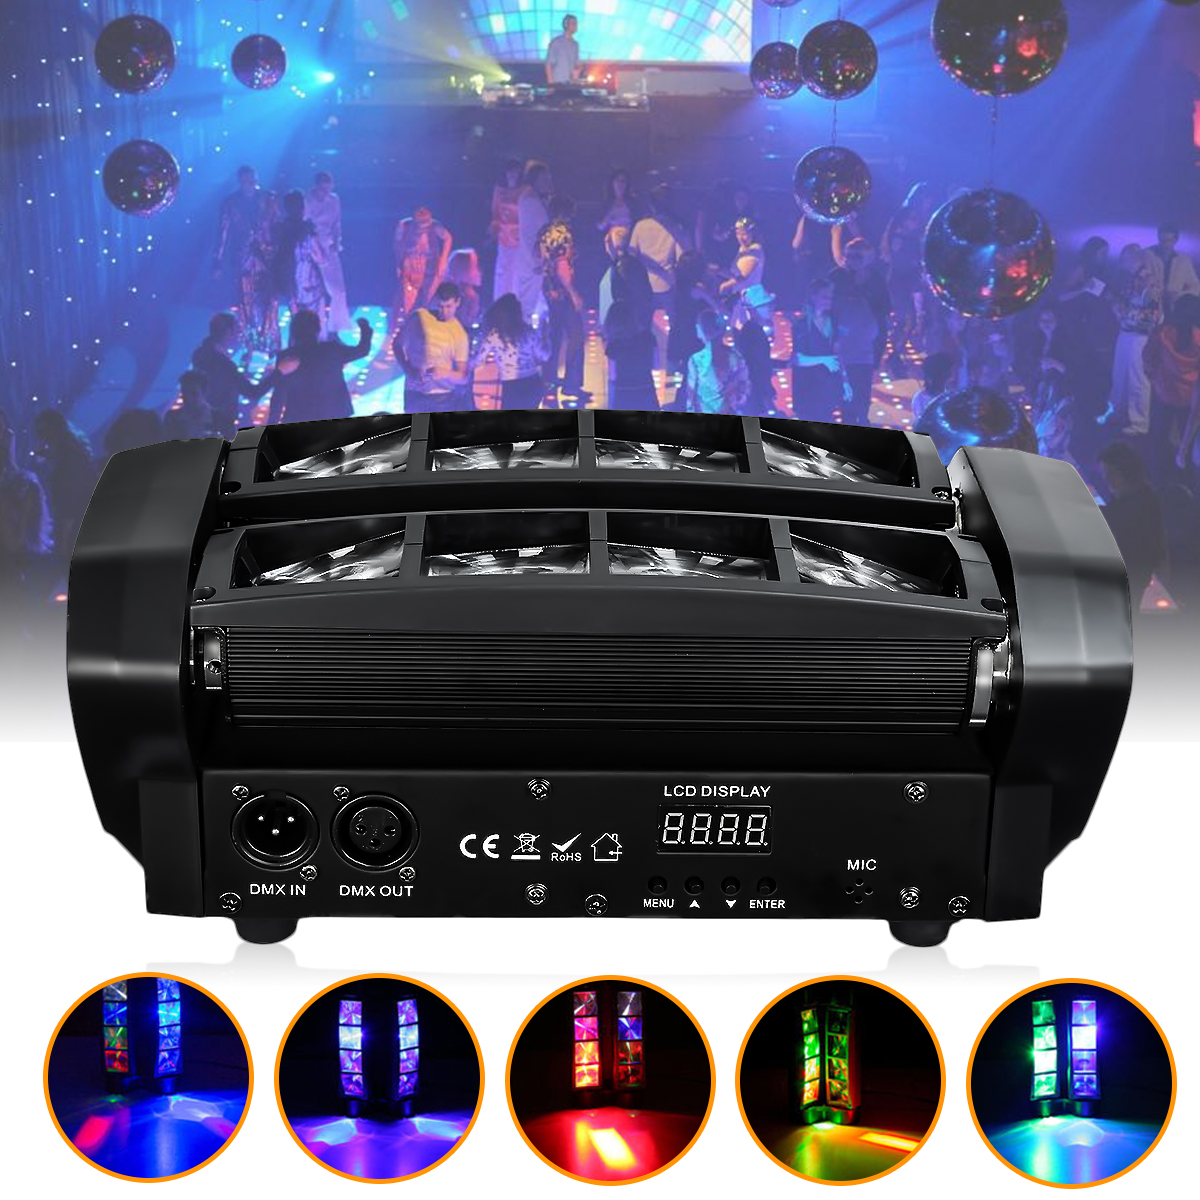 100W RGBW Christmas LED S pider Beam DMX Stage Light Disco DJ Party Lighting Lamp : 91lifestyle